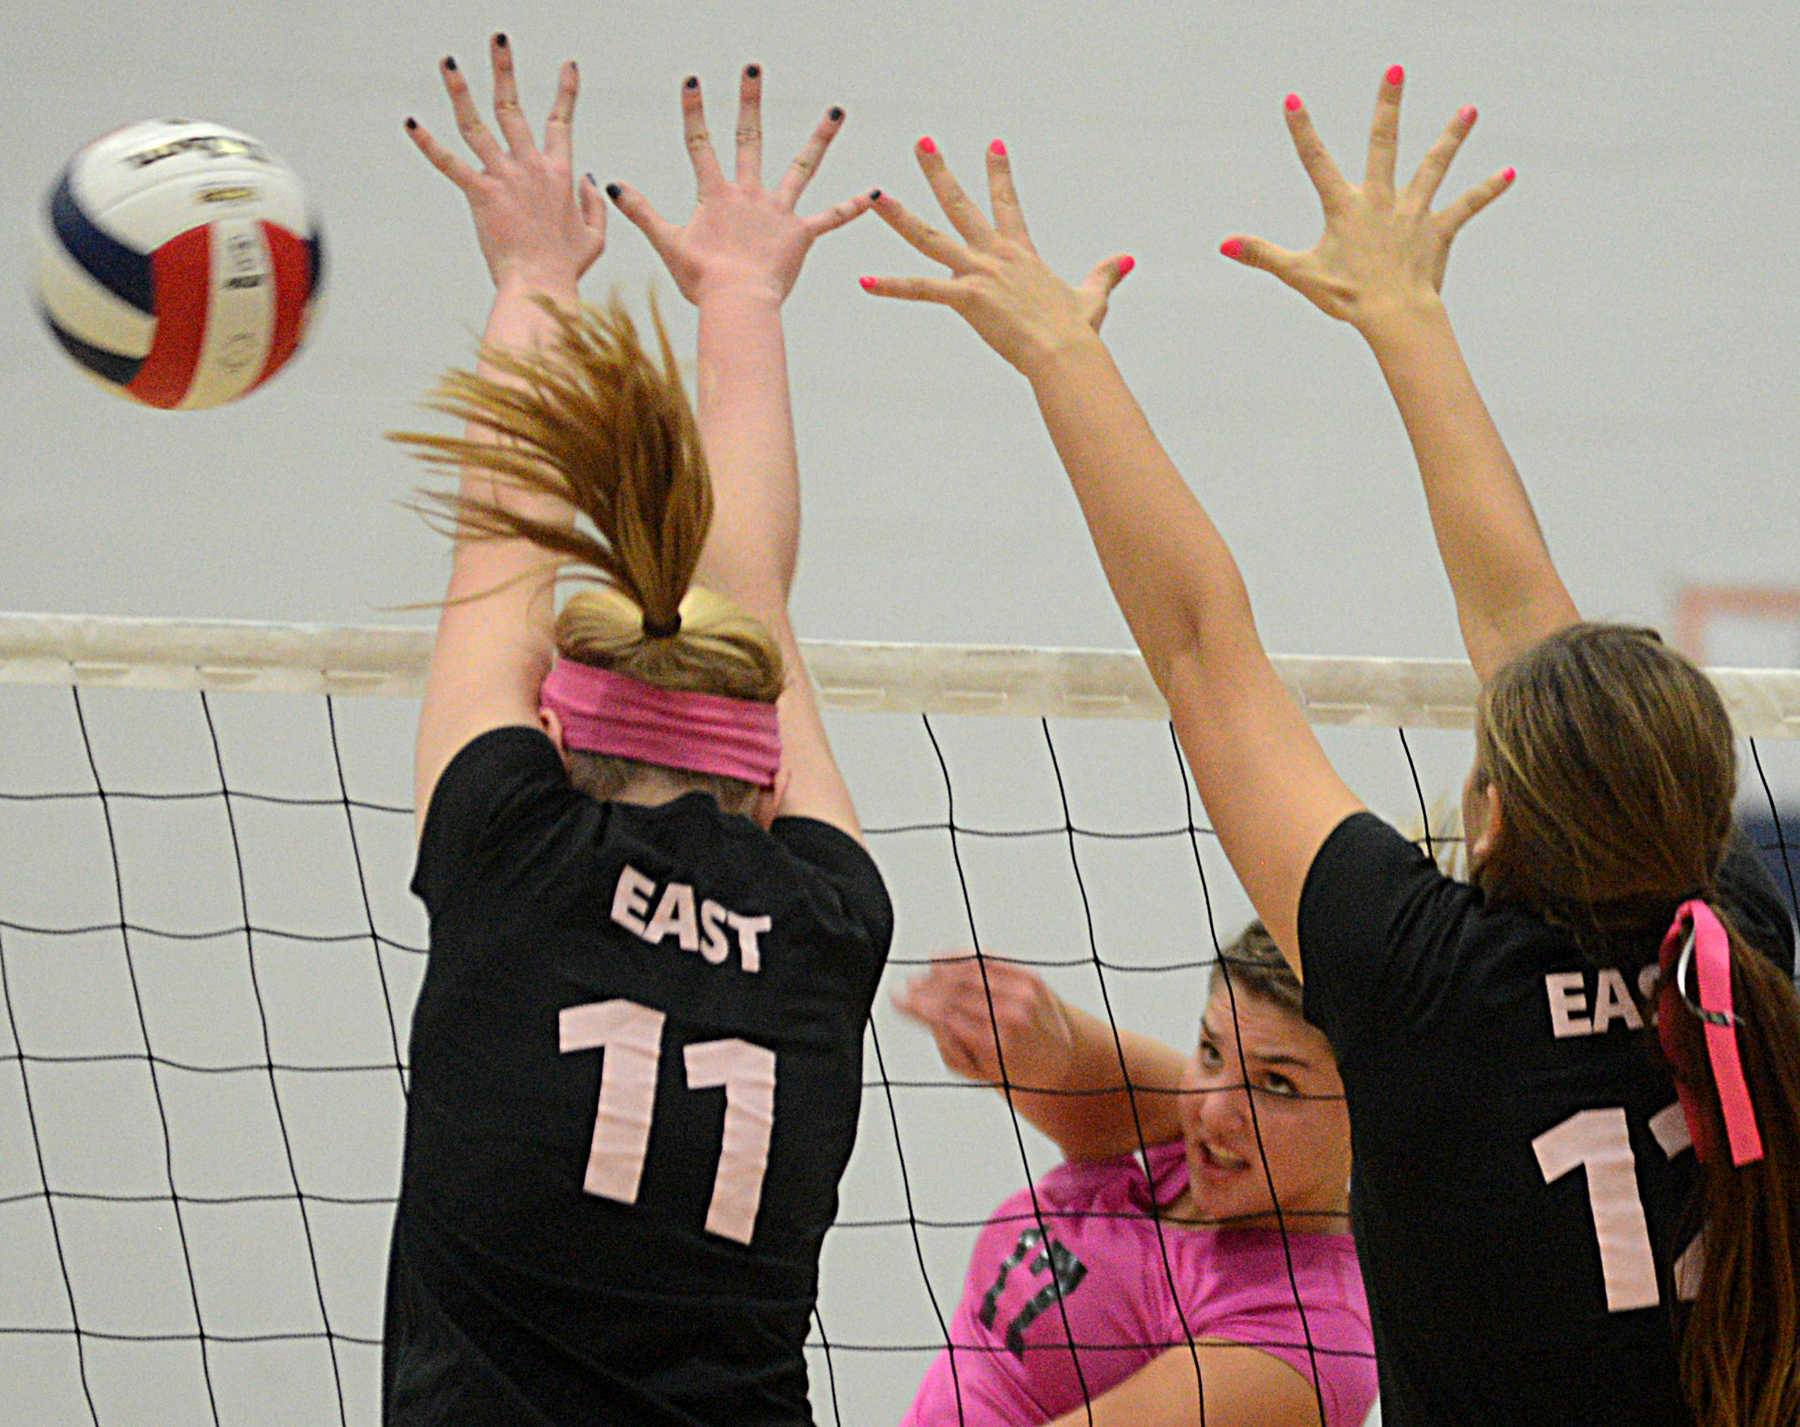 St. Charles North's Daley Krage, center, moves the ball past St. Charles East's Riley Schumacher, left, and Avery Macklin, right, during varsity girls volleyball at St. Charles North on Volley for the Cure night to honor and celebrate the heroic fight against breast cancer.